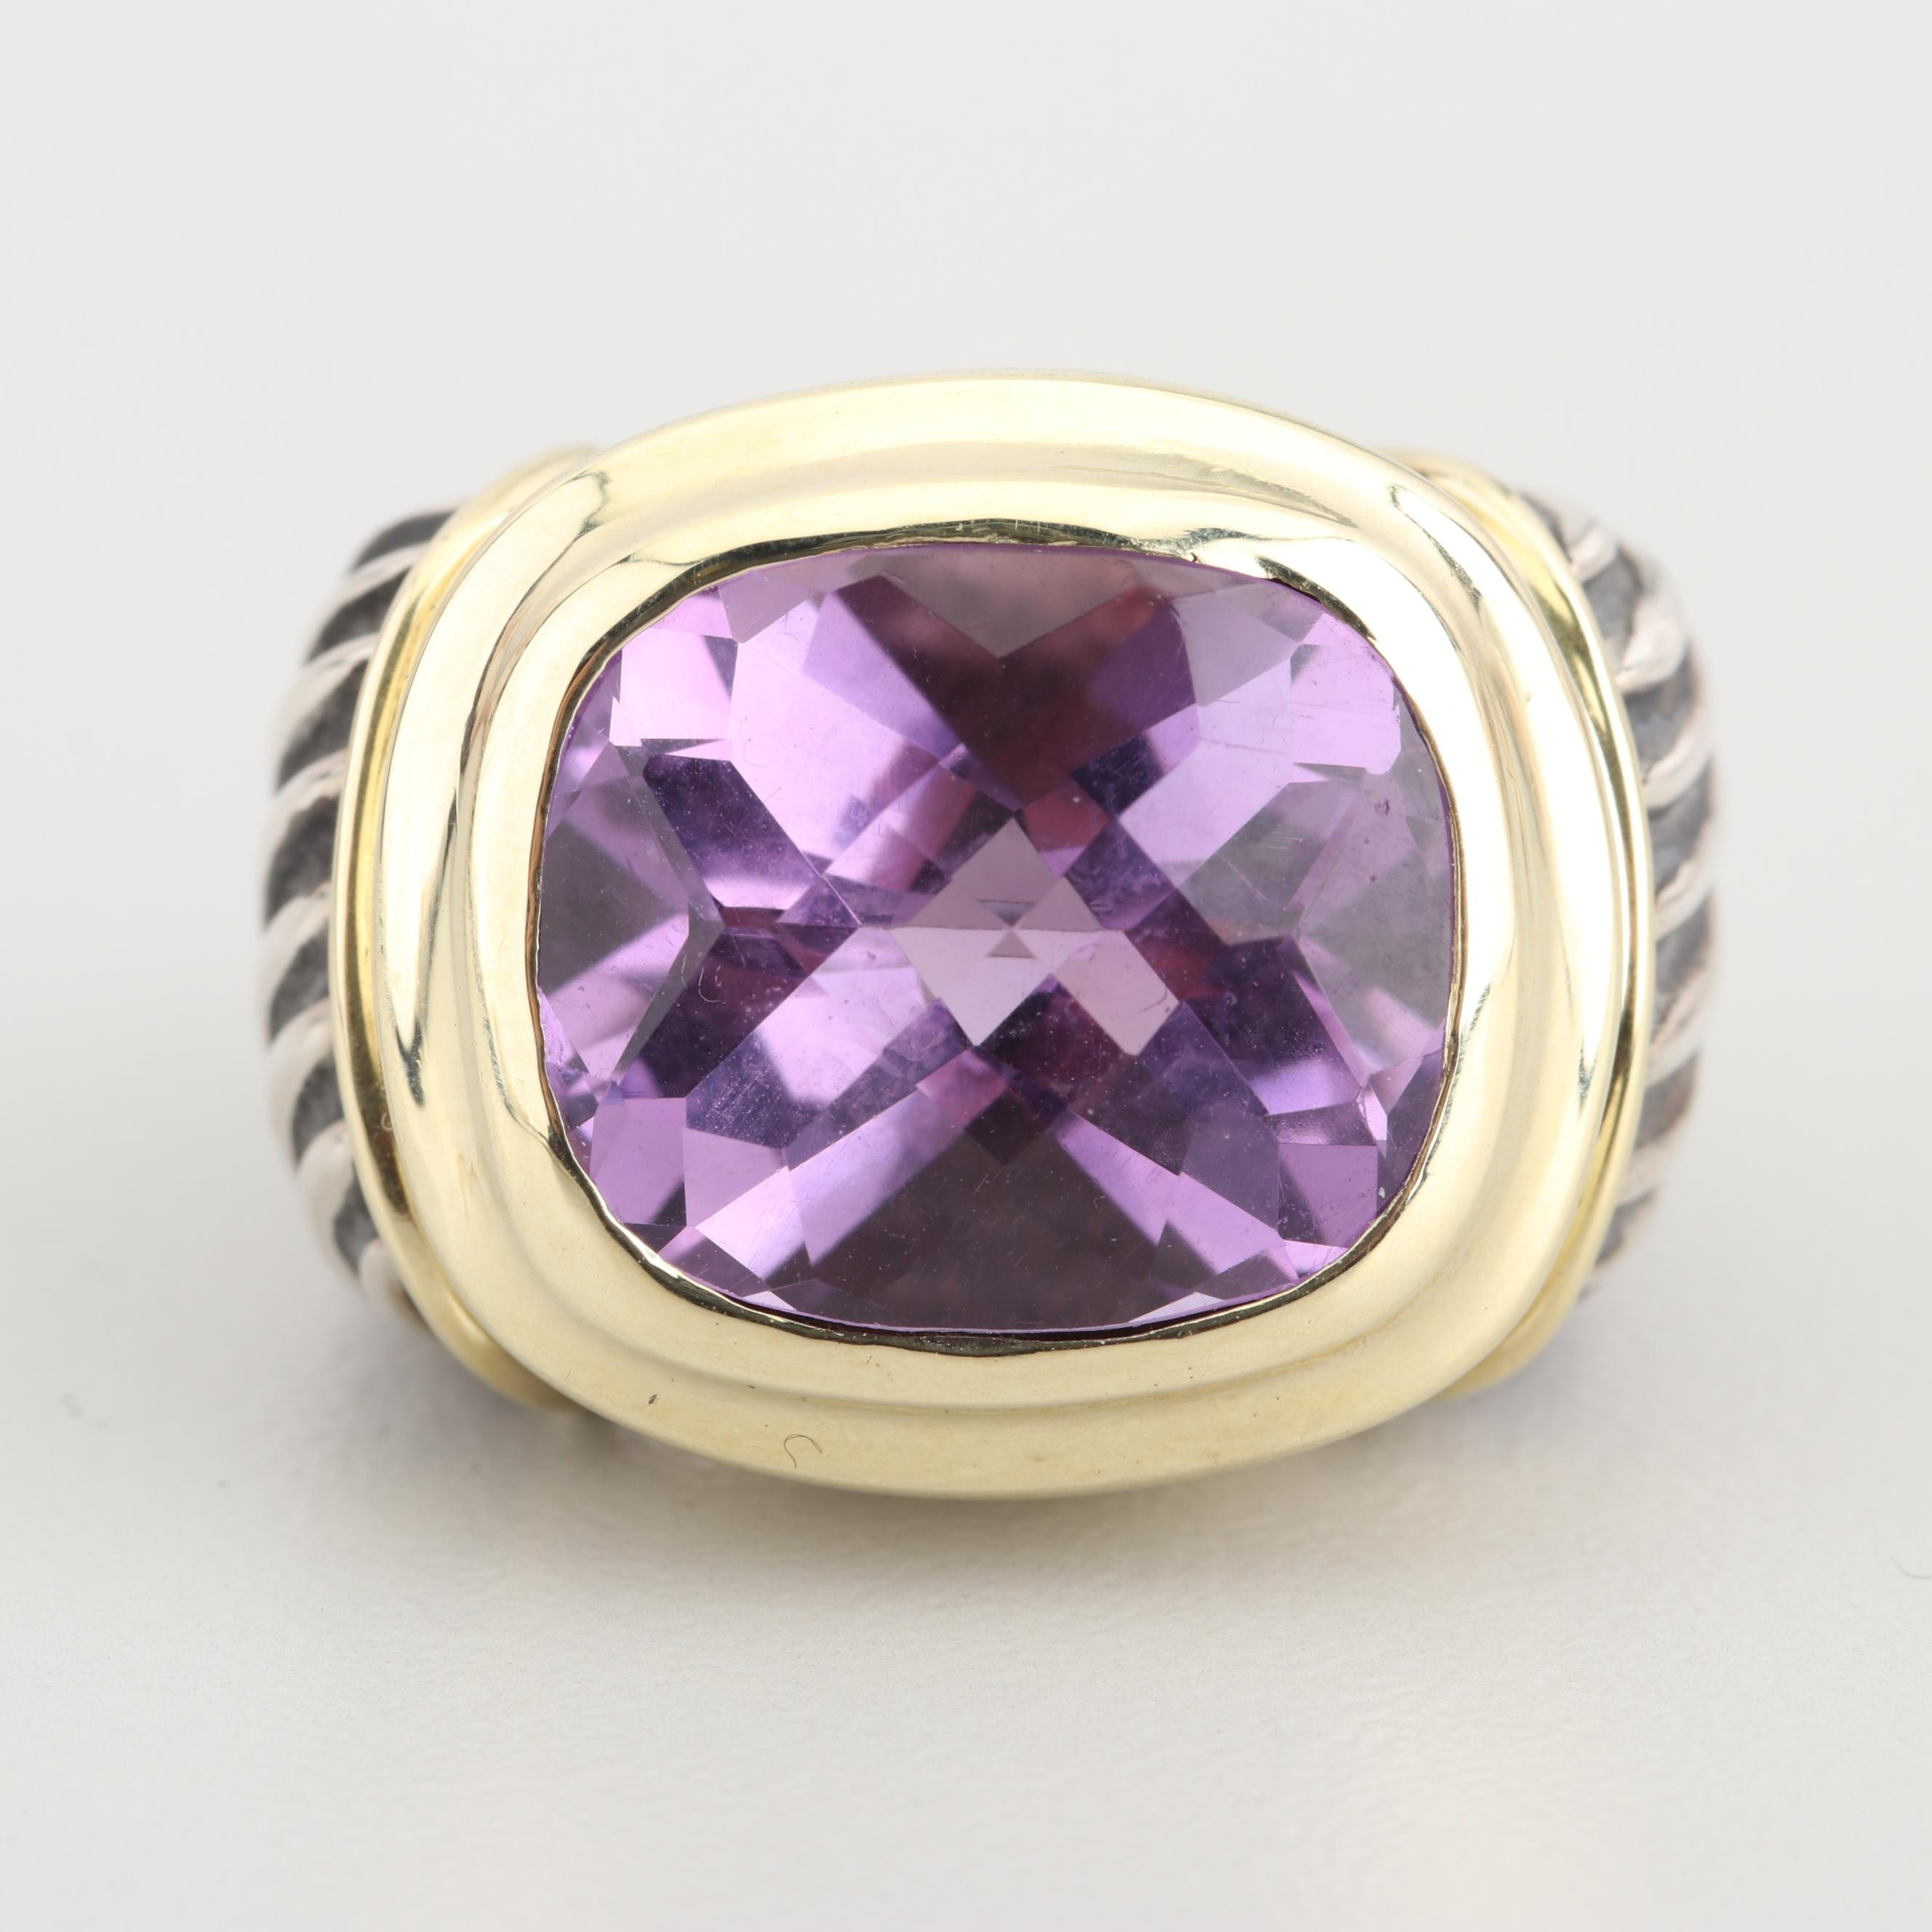 David Yurman Sterling Silver 14K Gold Accented 7.25 CT Amethyst Ring